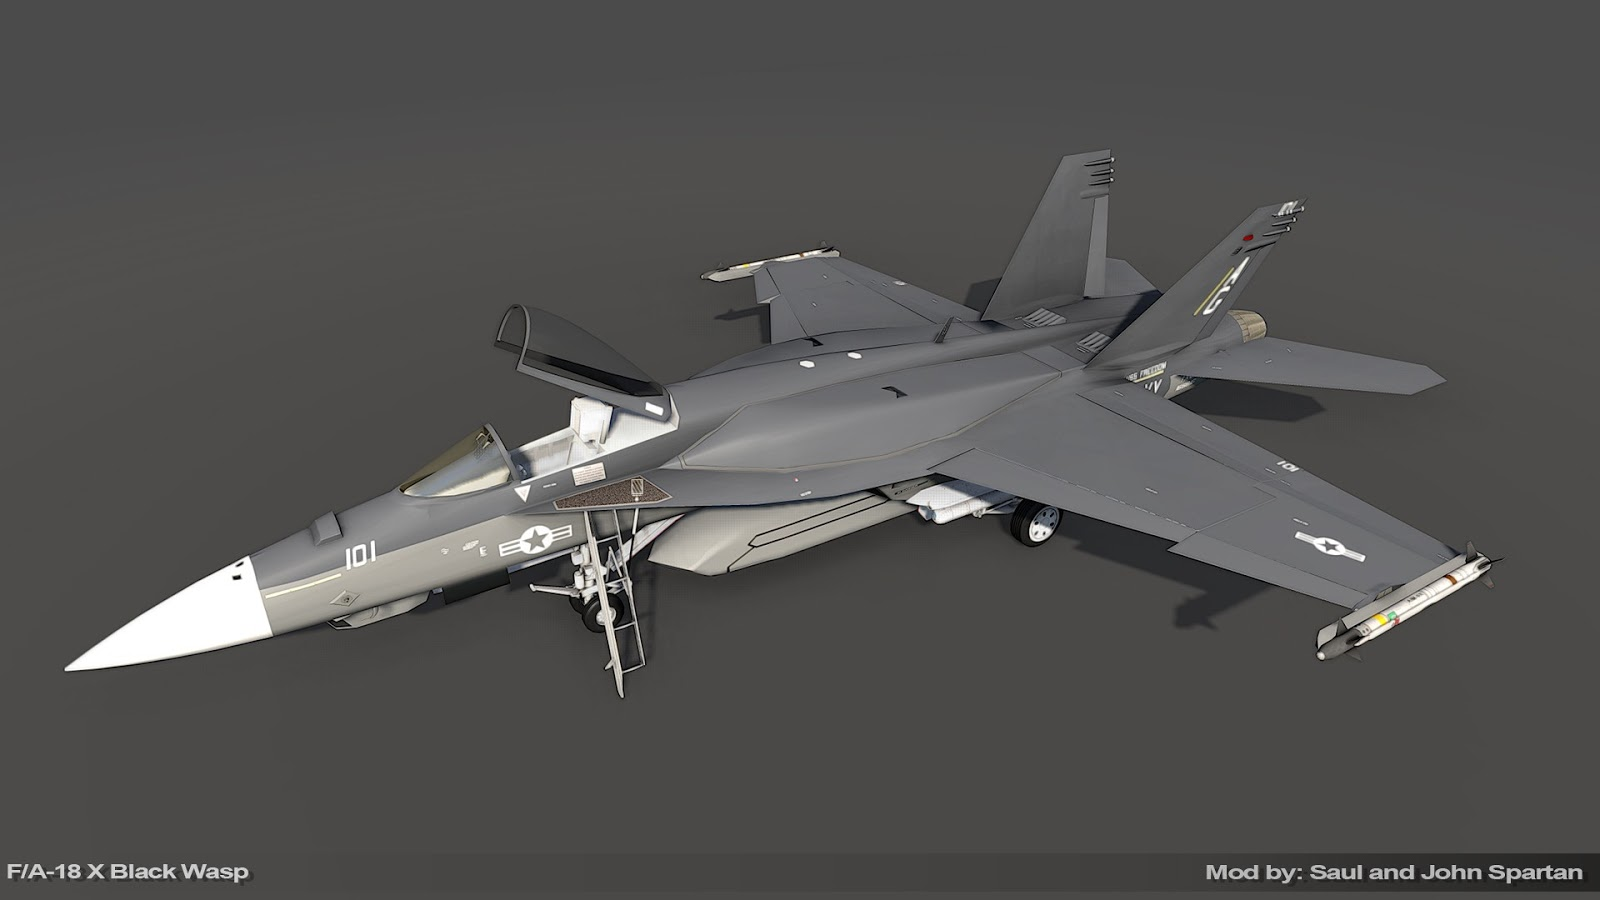 f a 18 super hornet f a 18x black wasp arma 3 mod. Black Bedroom Furniture Sets. Home Design Ideas